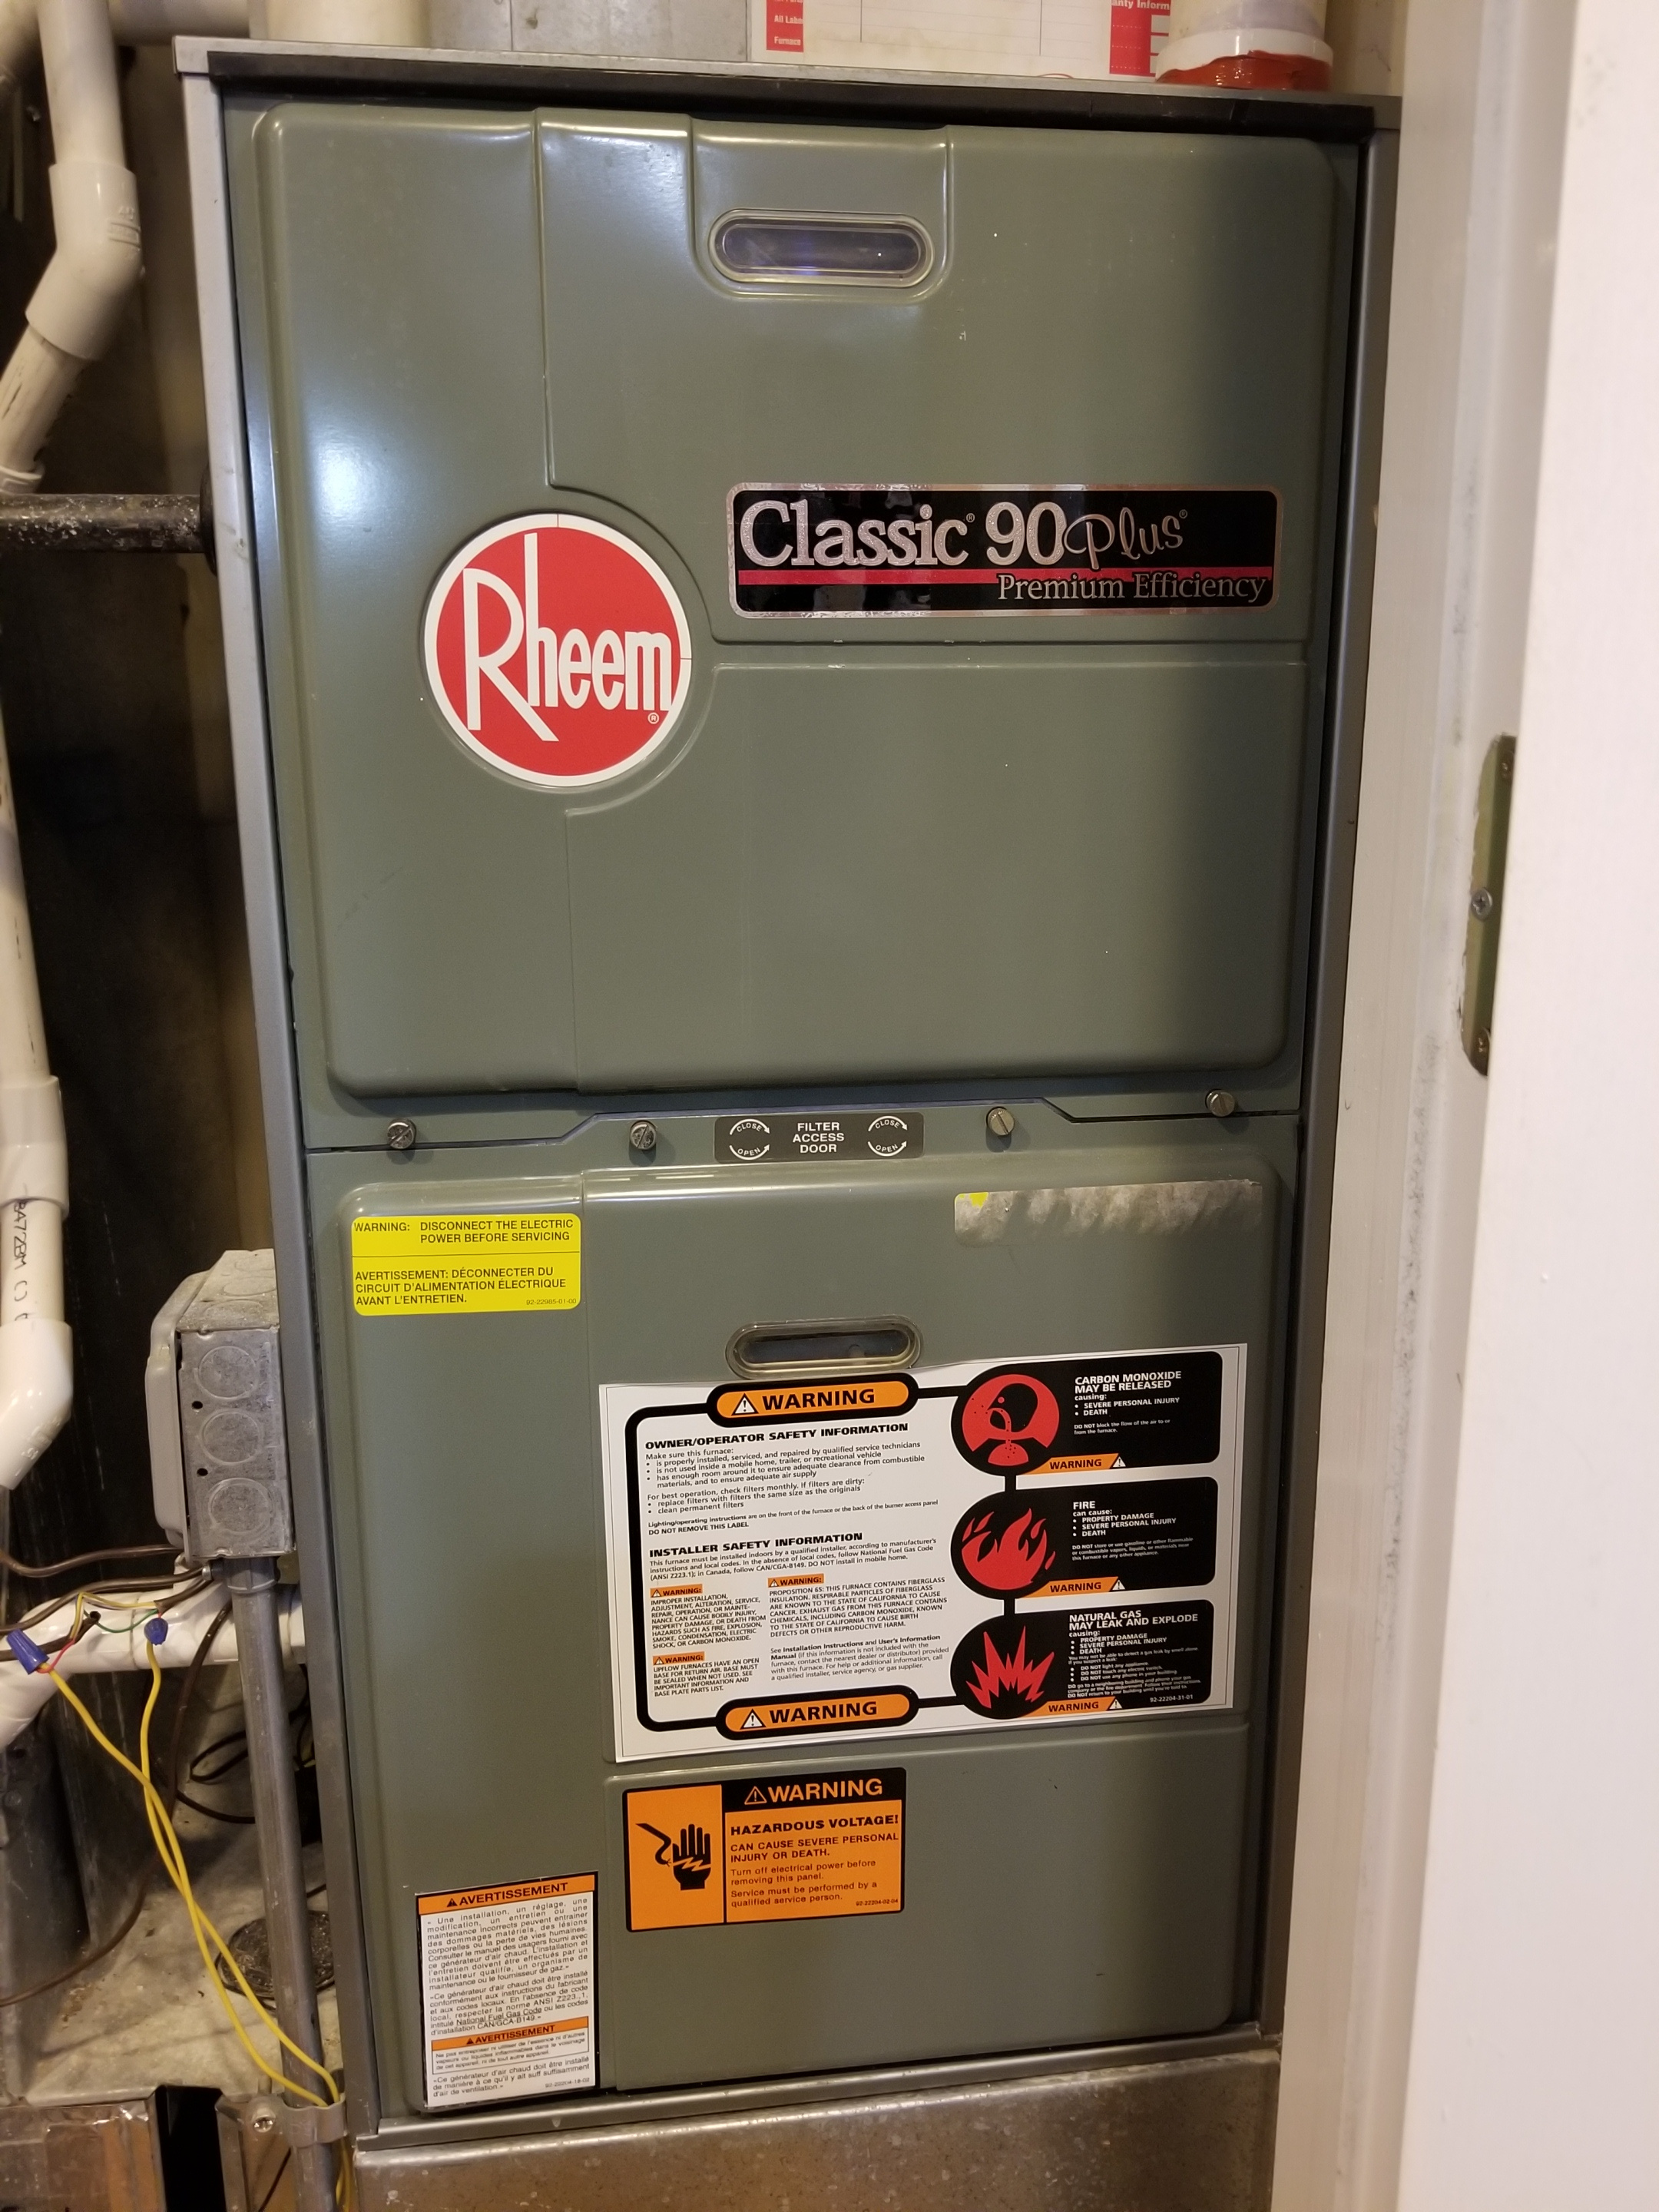 Repaired the Rheem furnace and made adjustments to improve the  efficiency and life expectancy of the equipment